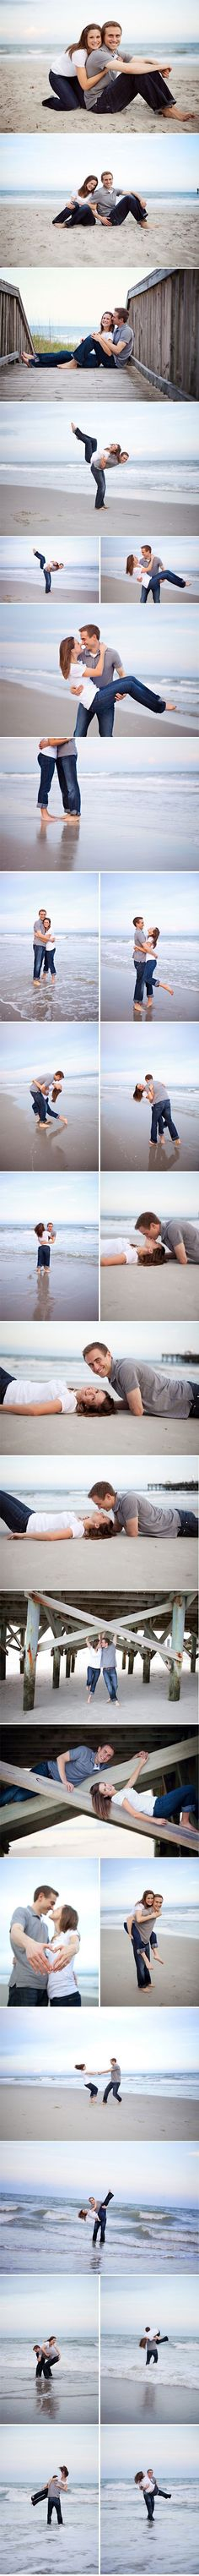 Beach engagement photos - perfect!